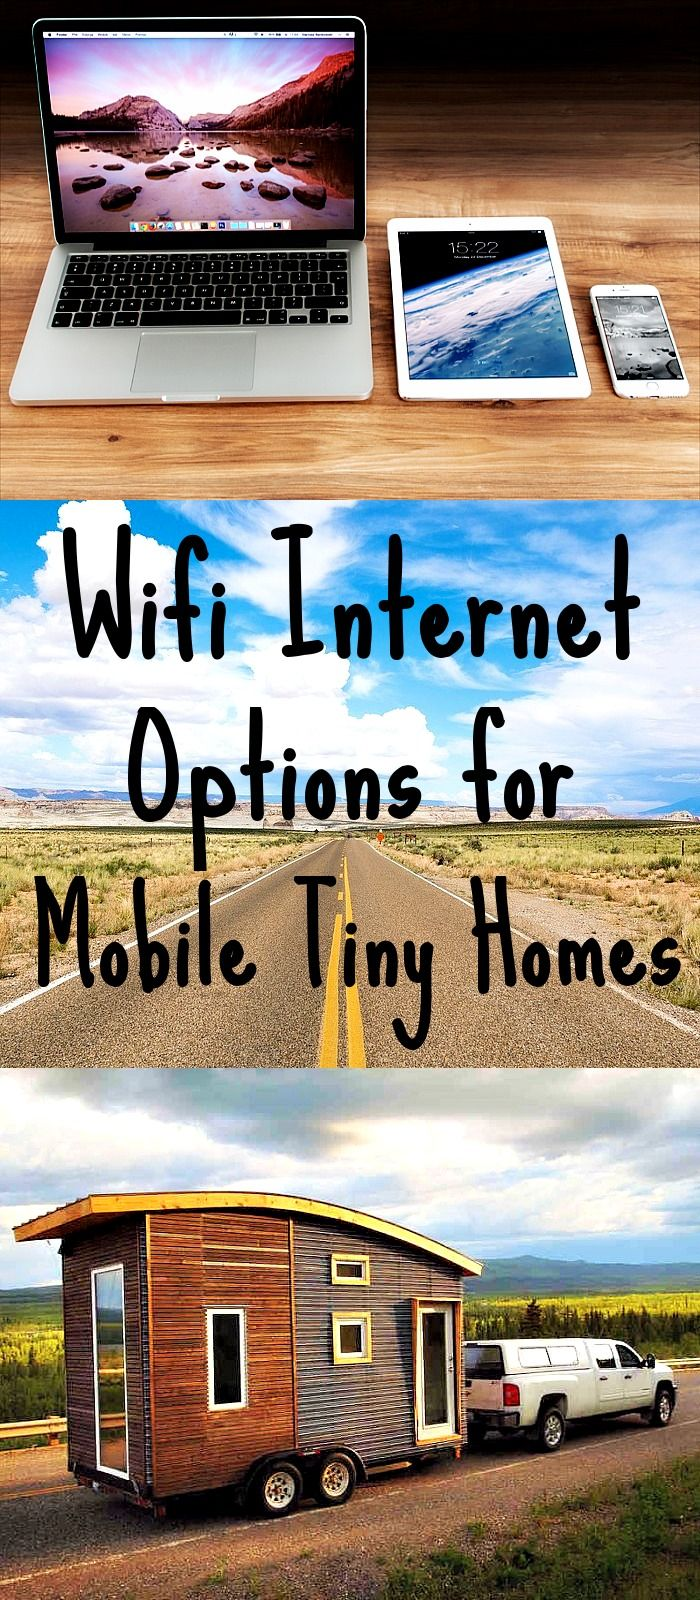 Many who live in mobile tiny homes need internet access for both running an online business and for staying updated on various subjects. In this post, Wifi internet options will be explained in detail as well as where to buy wifi data plans and hotspot devices. Click through to learn more and stay tuned for a final sequel post covering satellite tiny home internet options. #internet #wifi #tinyhouse #tinyhome